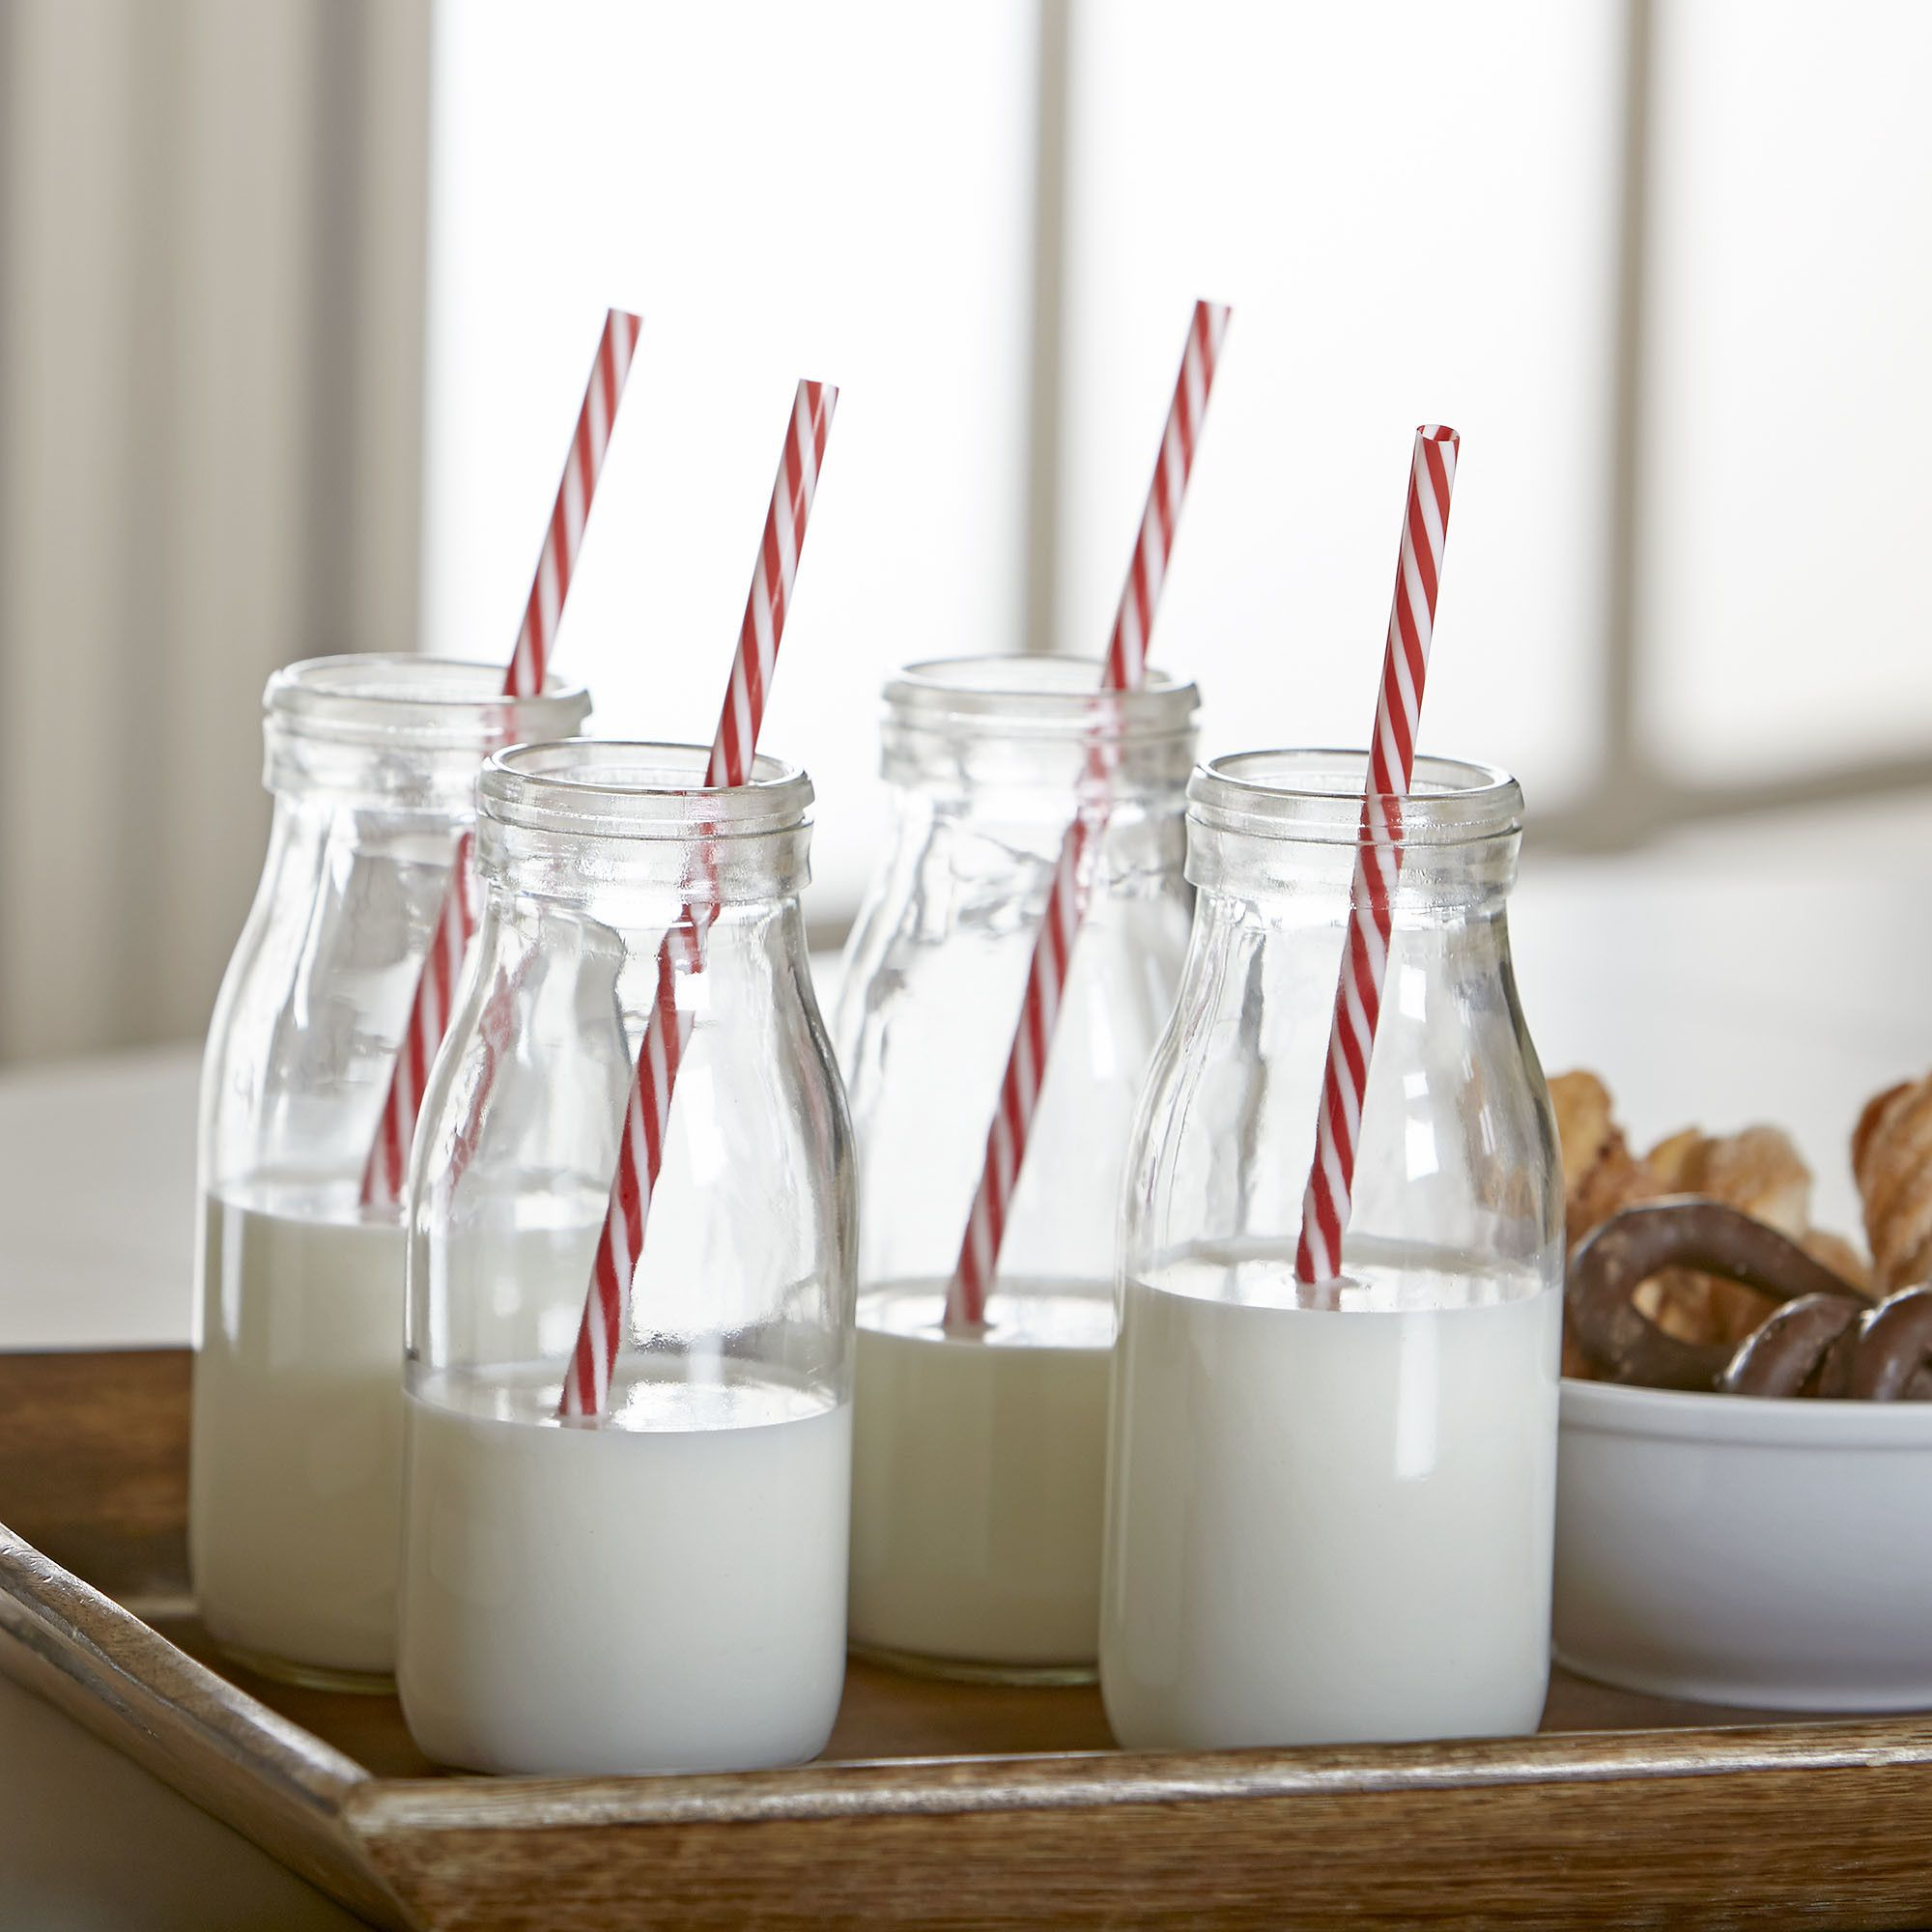 Gingham Milk Bottle 8 Piece Set | The Gingham Milk Bottle set includes 4 glass milk bottles each with their own reusable straw.